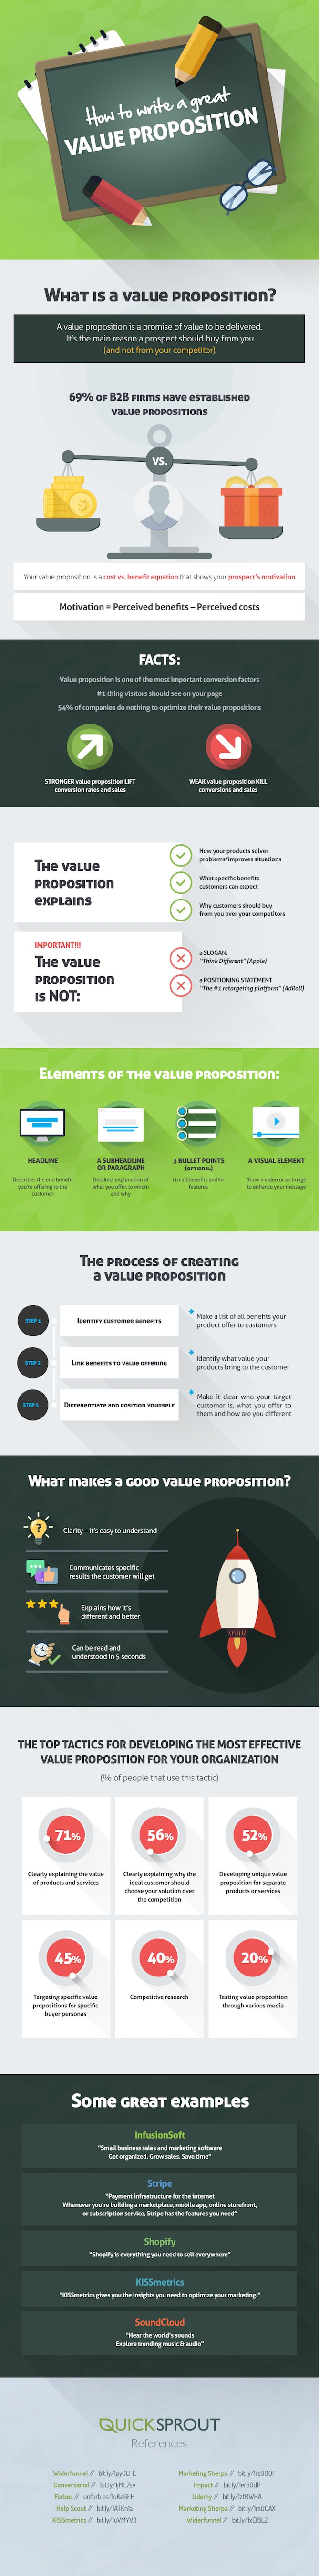 value-prop-infographic